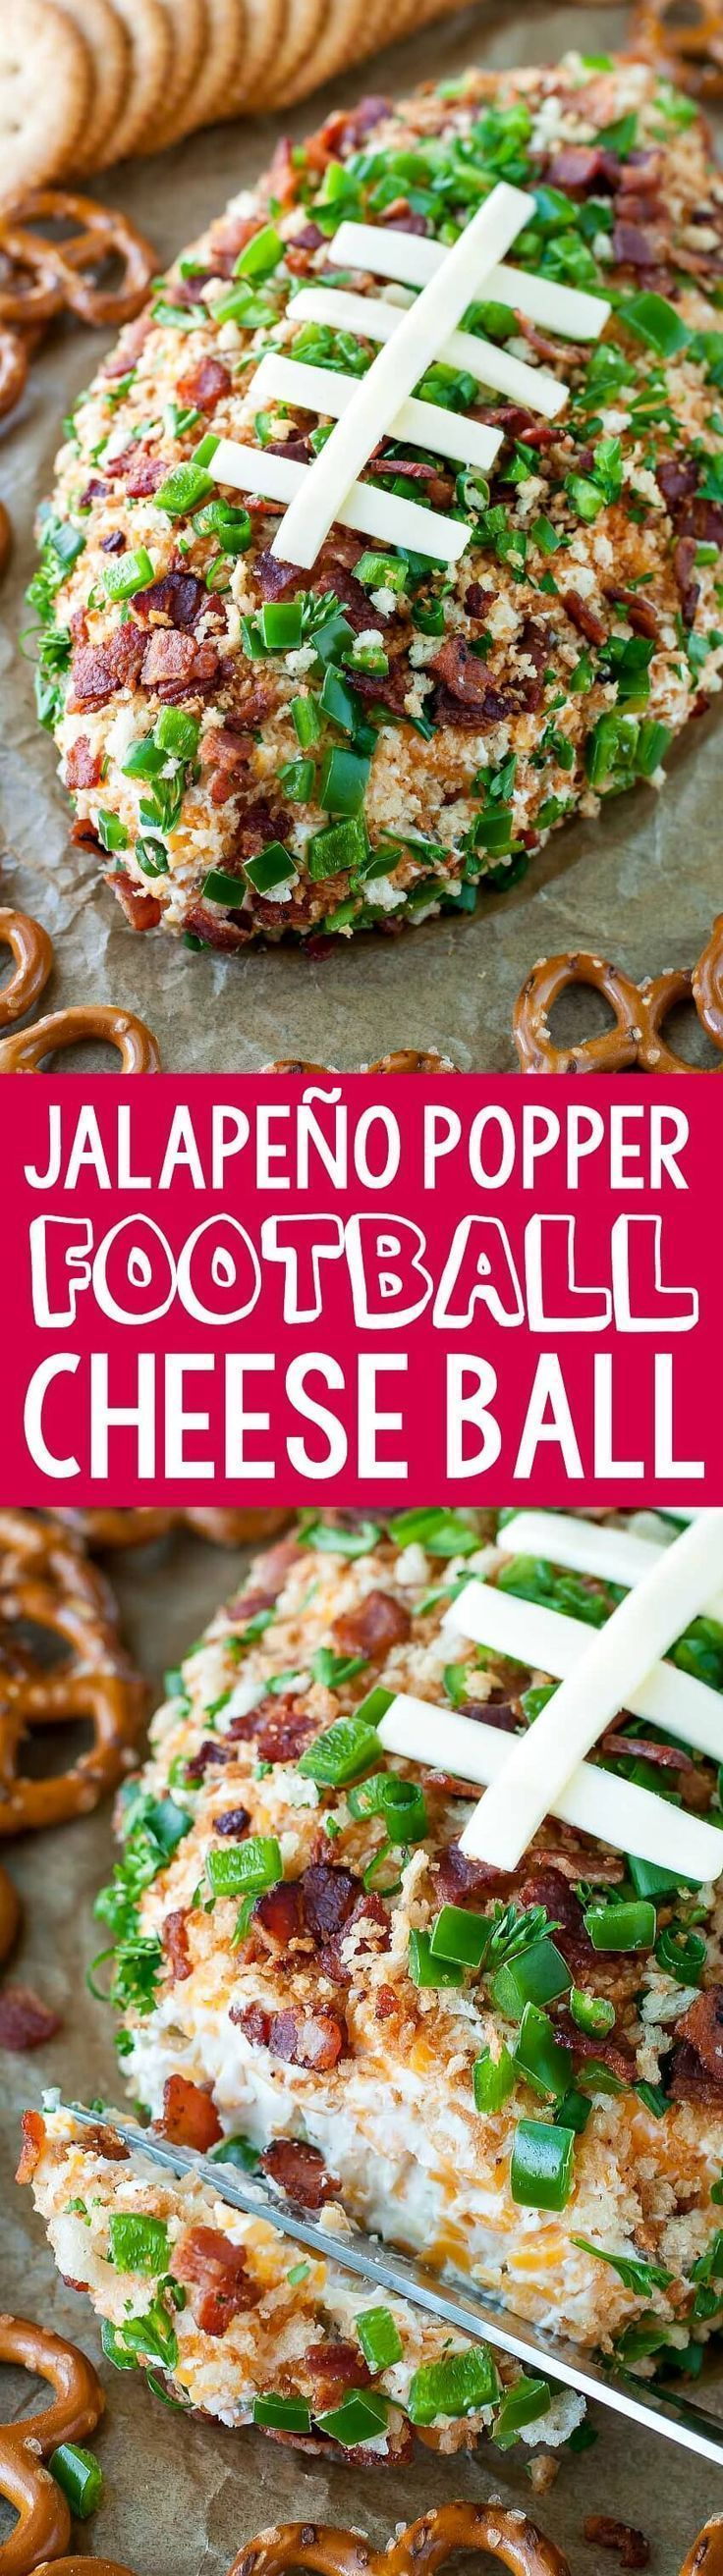 This Jalapeño Popper Football Cheese Ball is sure to make a touchdown at your next game day party! Spread it on crackers or dive in with pretzels and enjoy!